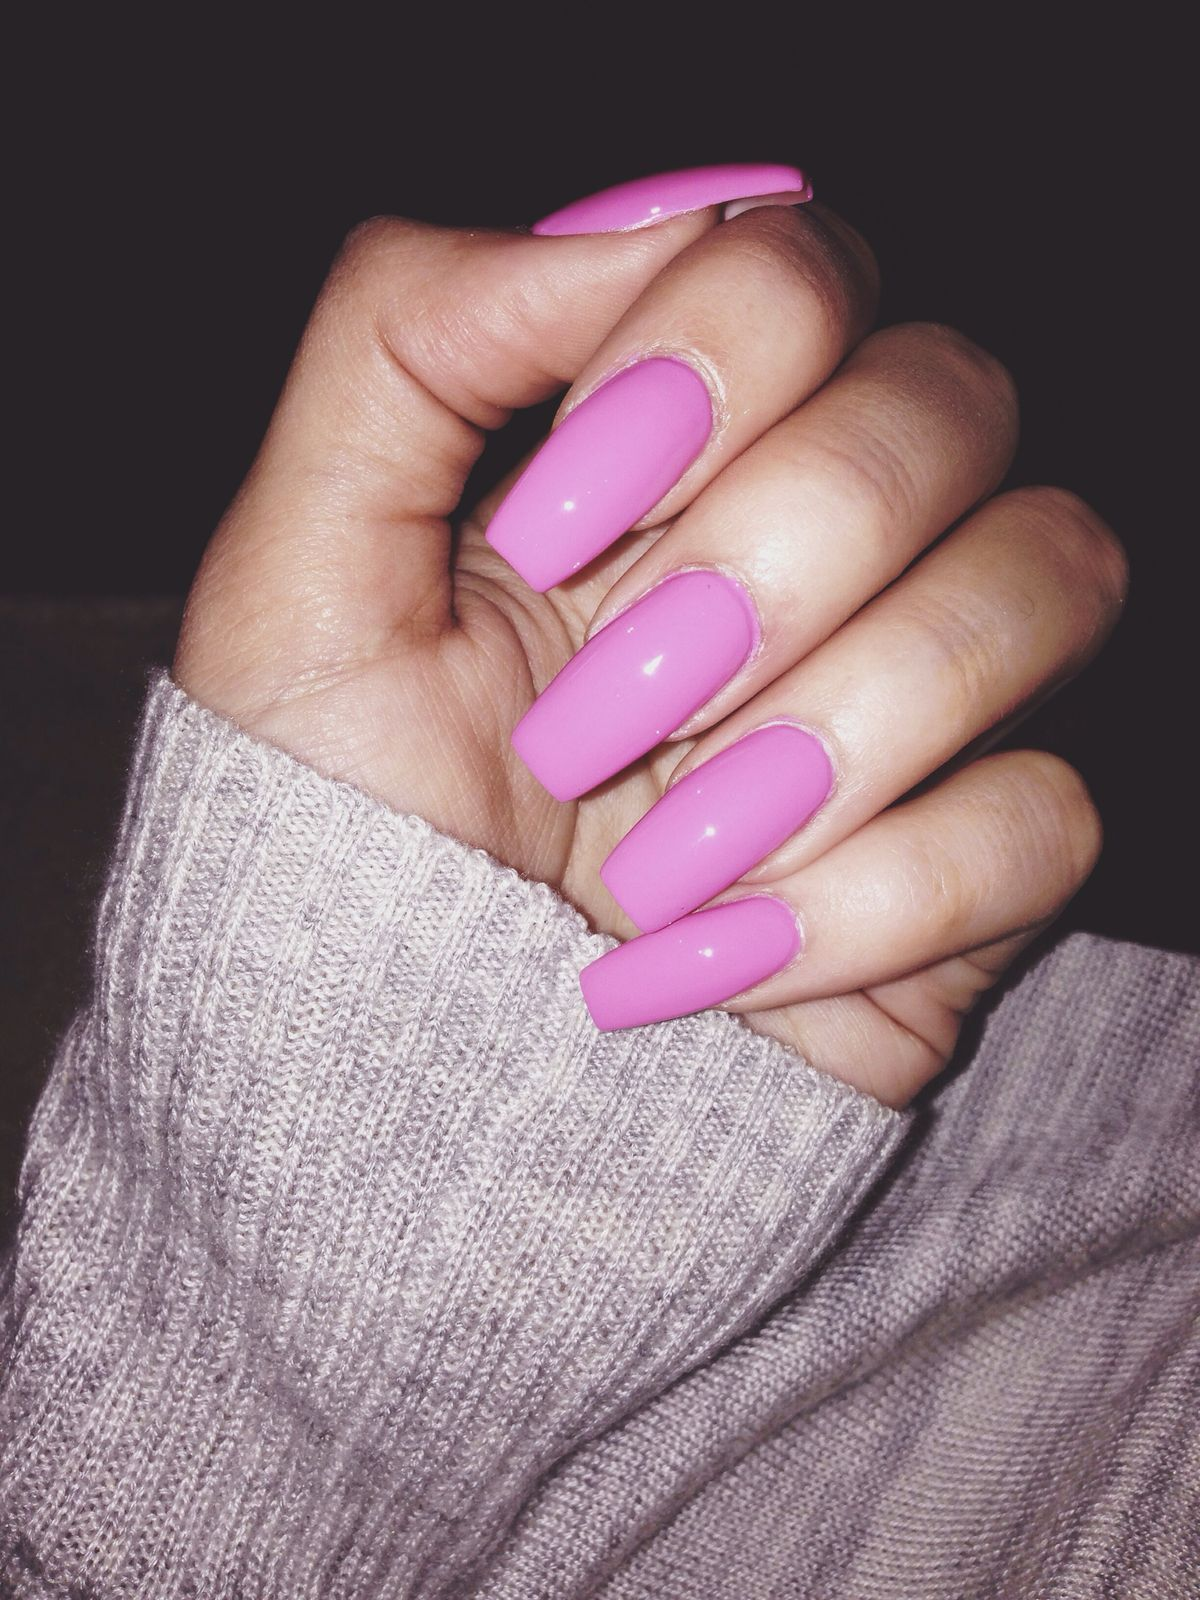 Powder pink nails pictures photos and images for facebook tumblr - Nails Games